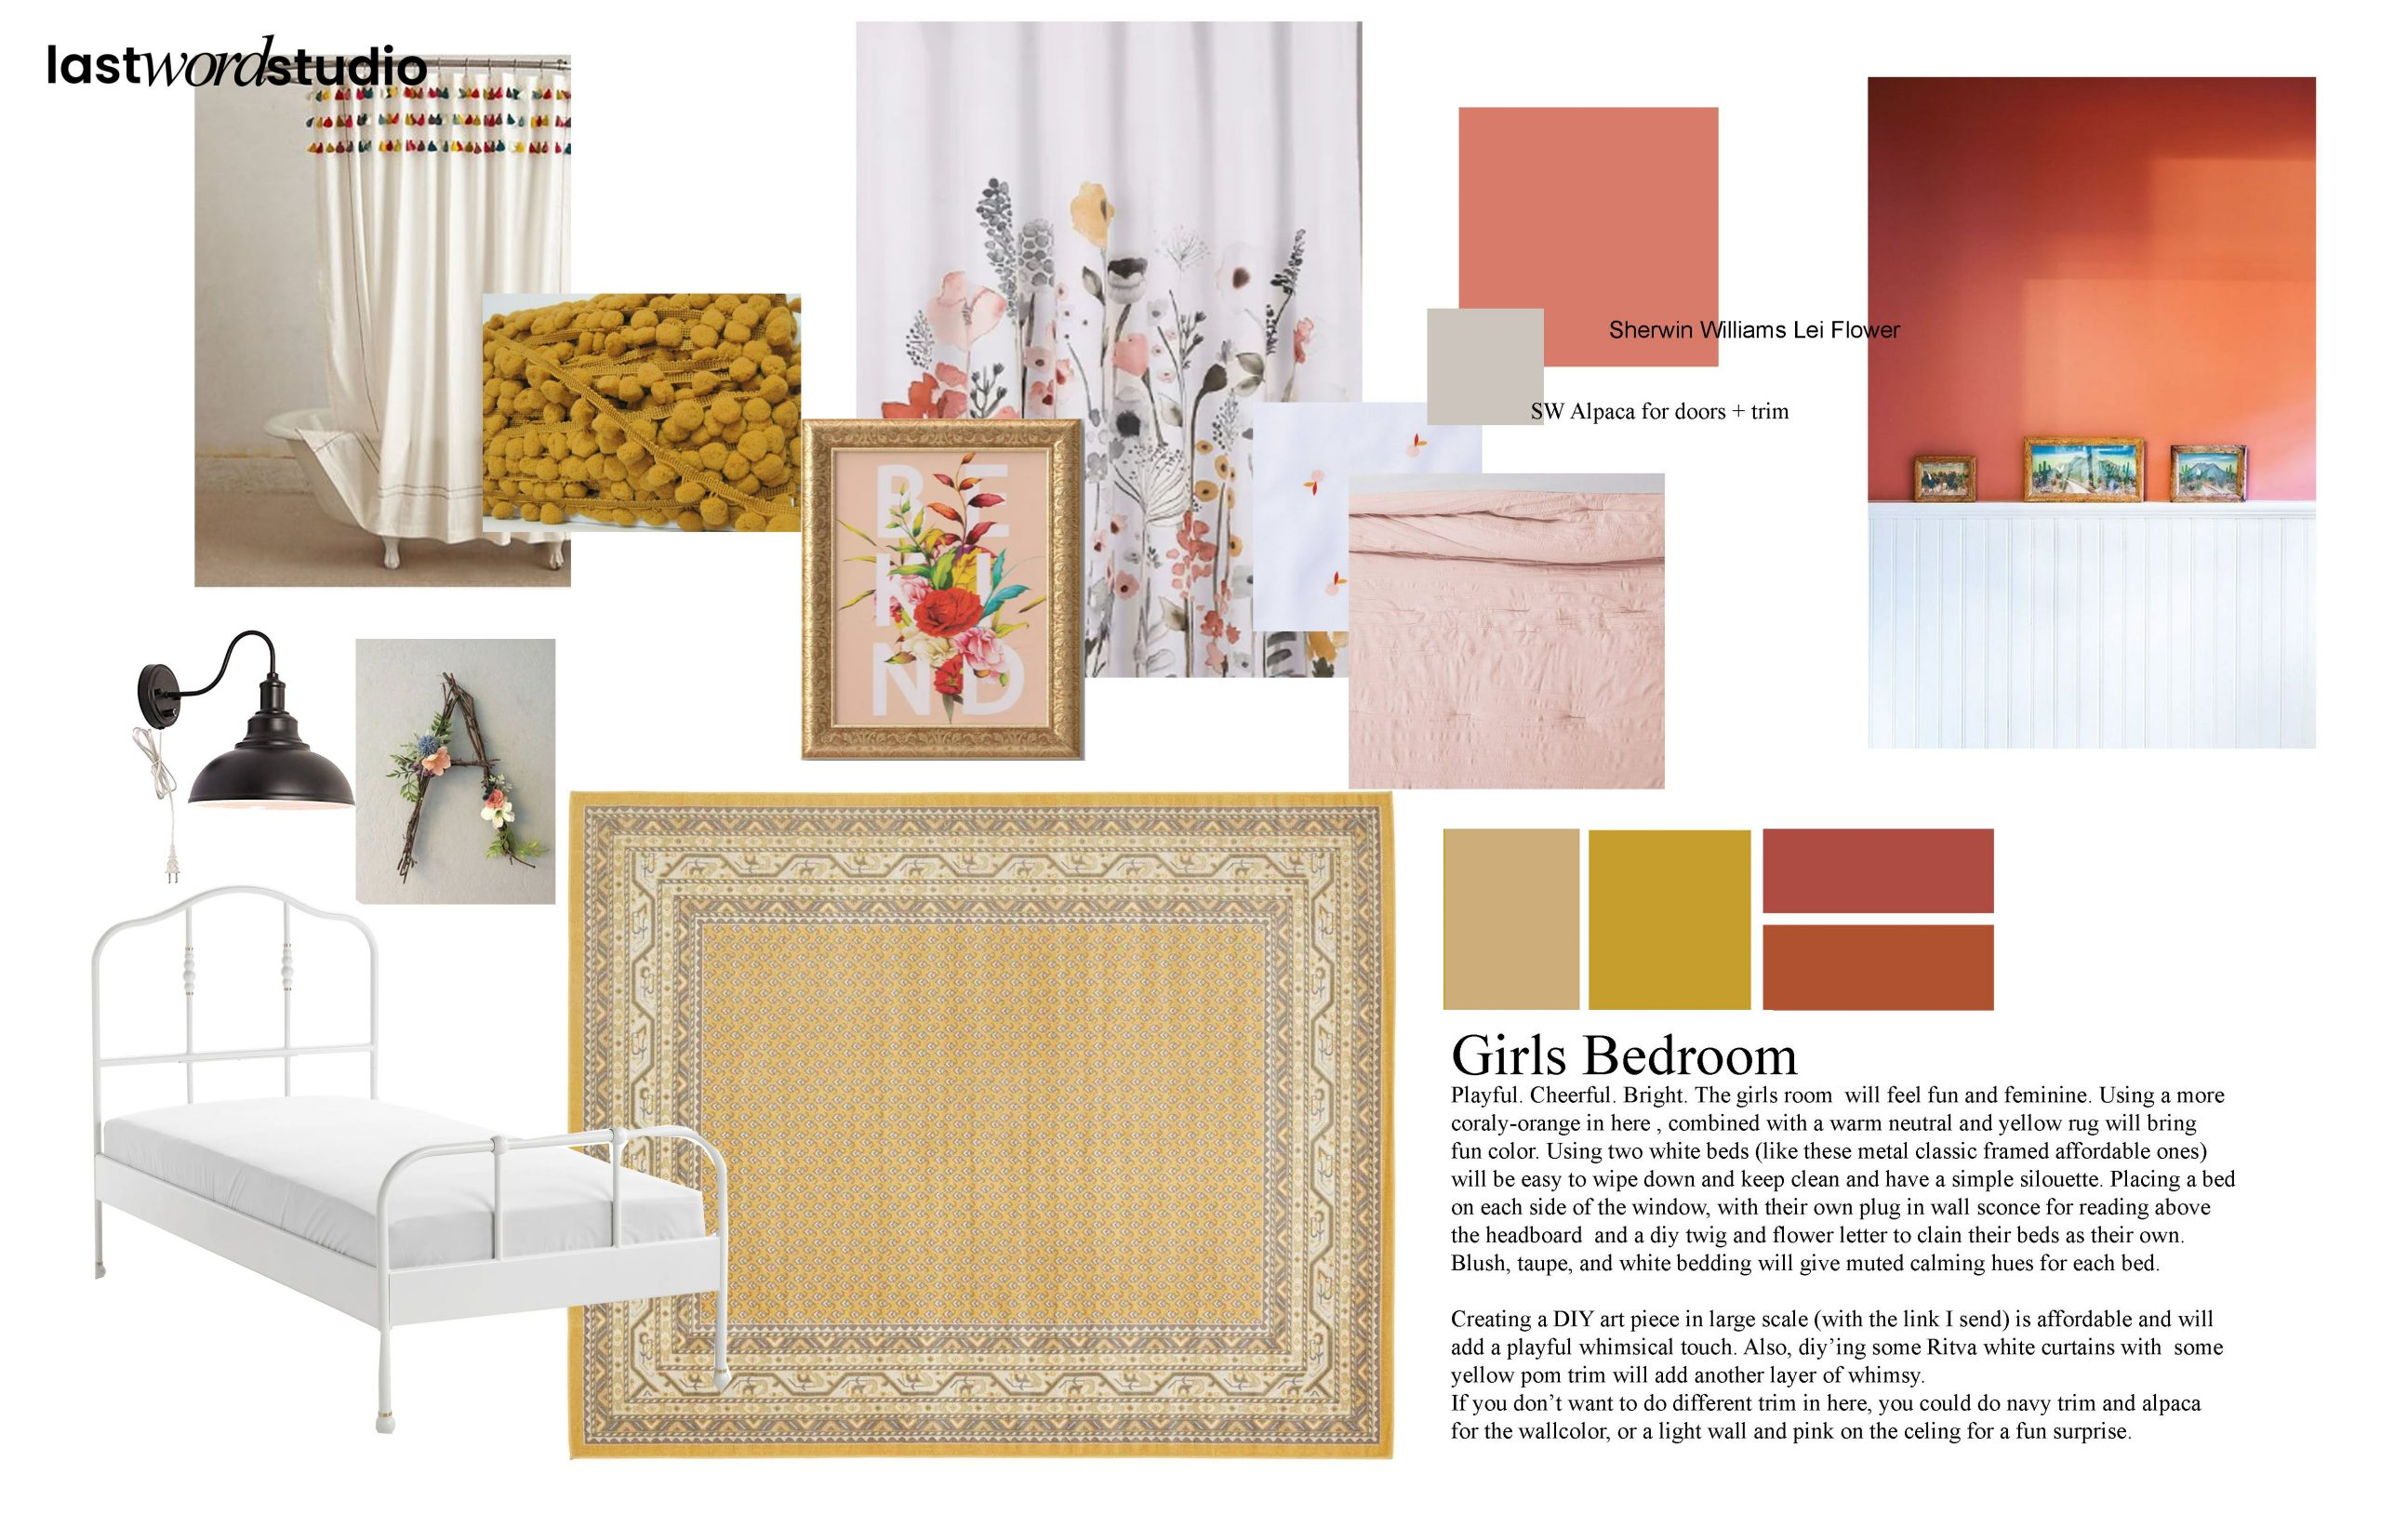 girls bedroom concept